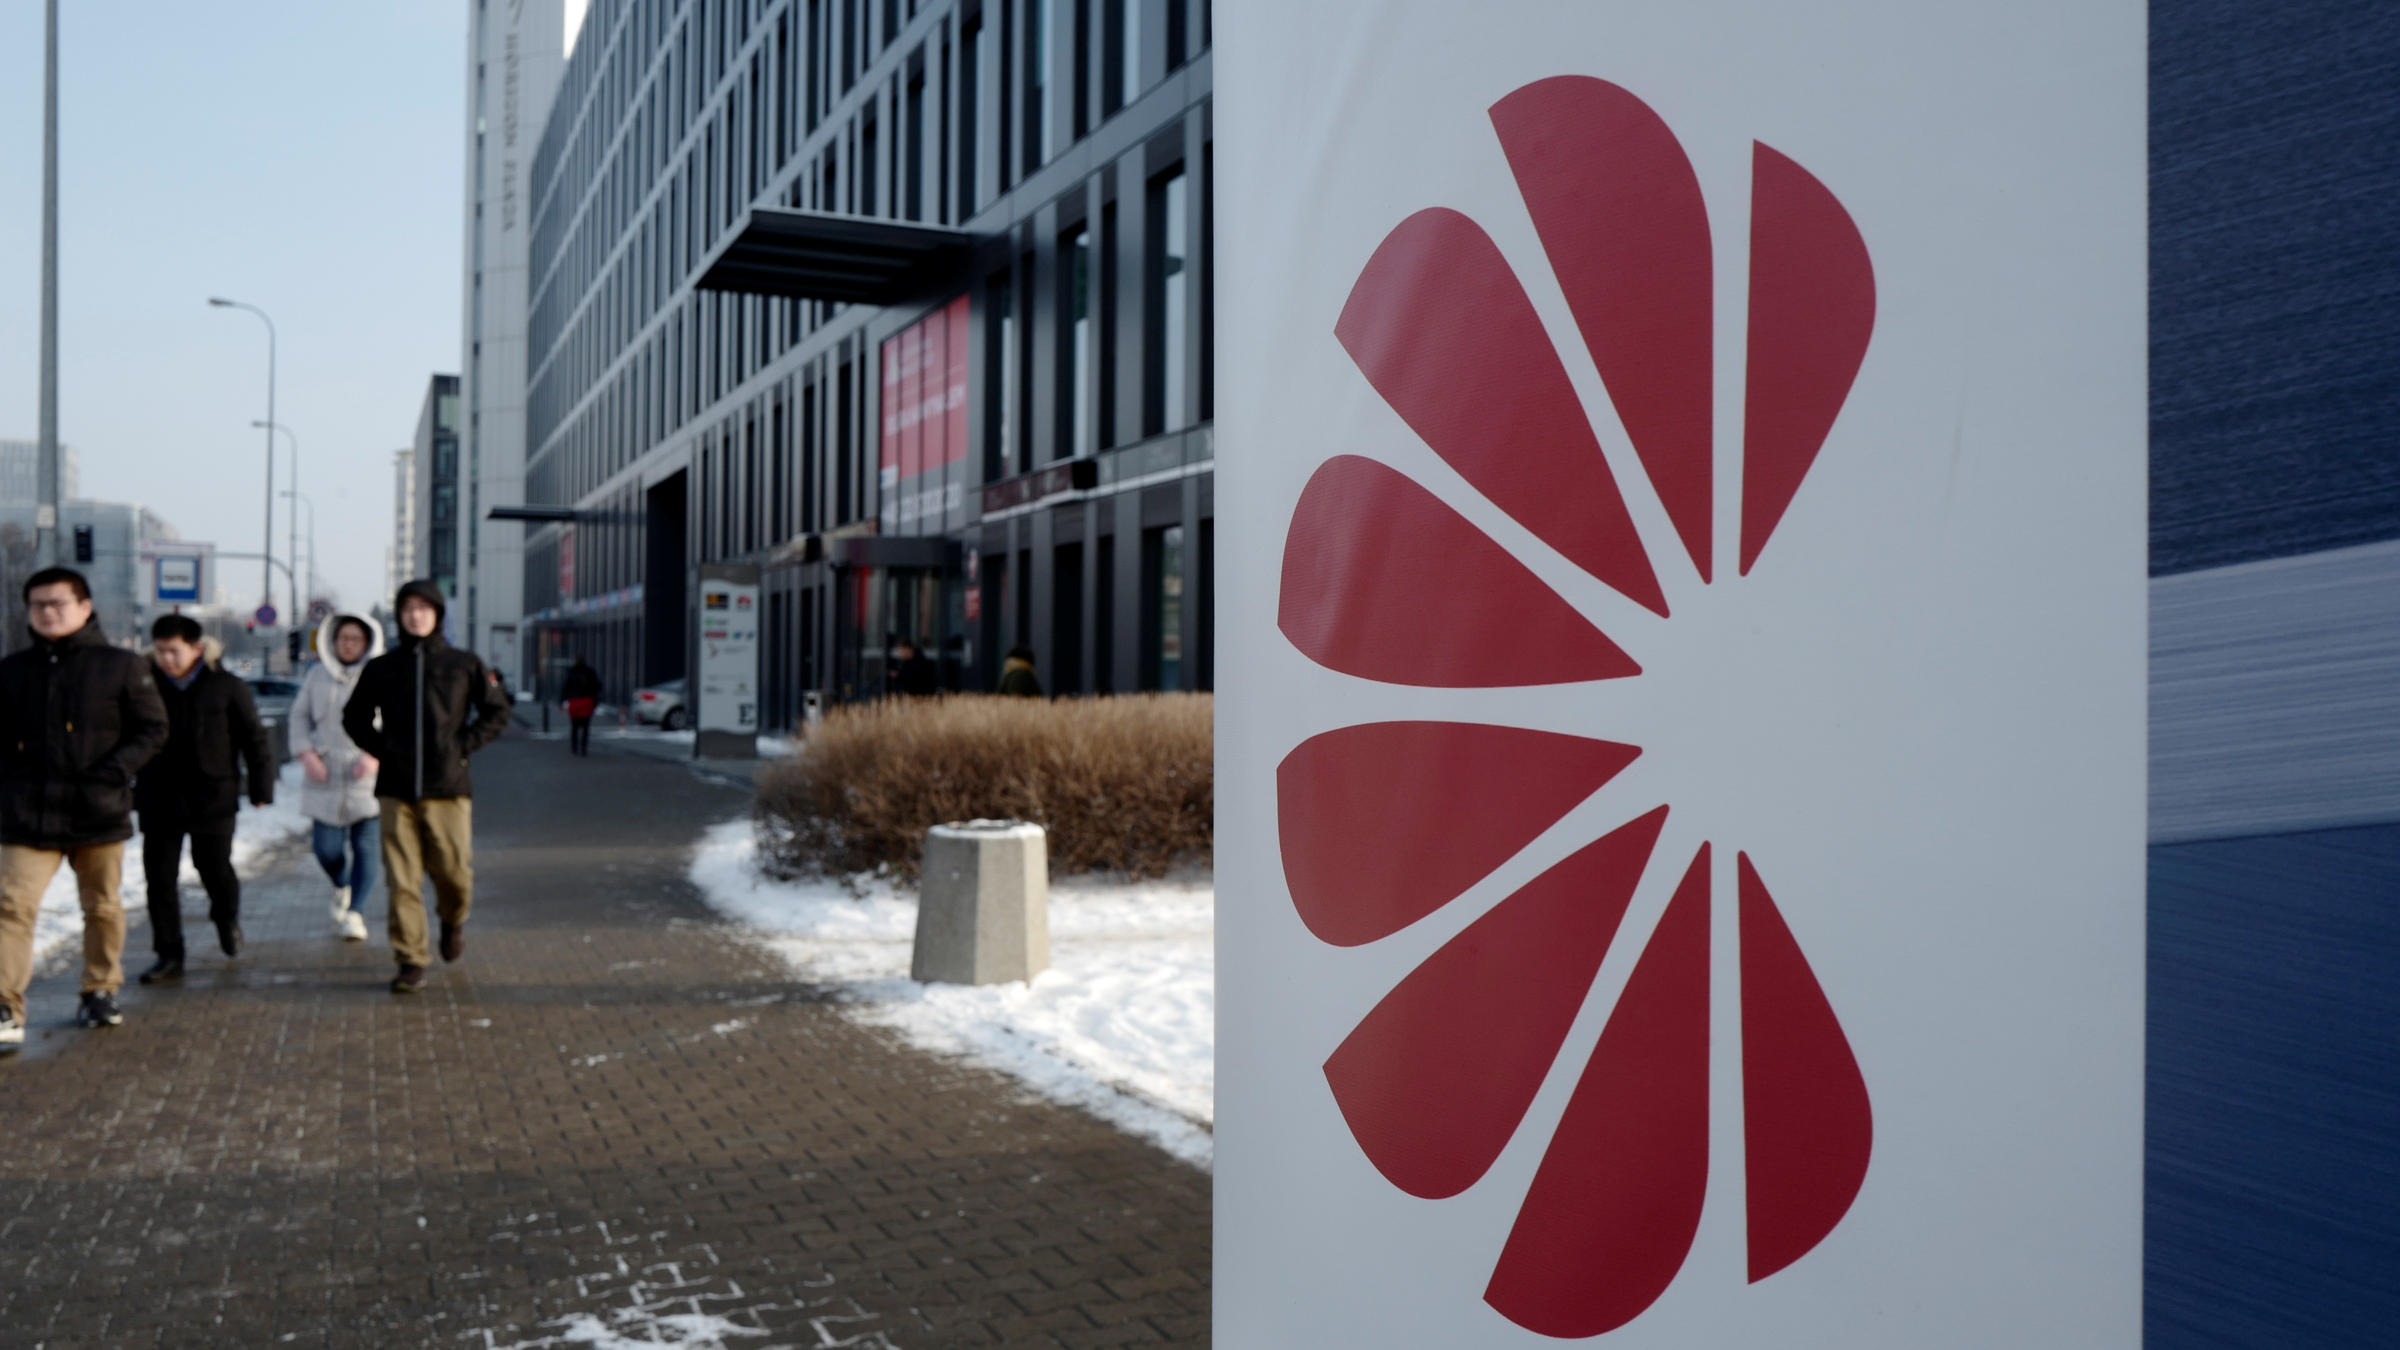 Chinese Huawei employee, Polish former intel officer, arrested in Poland for espionage